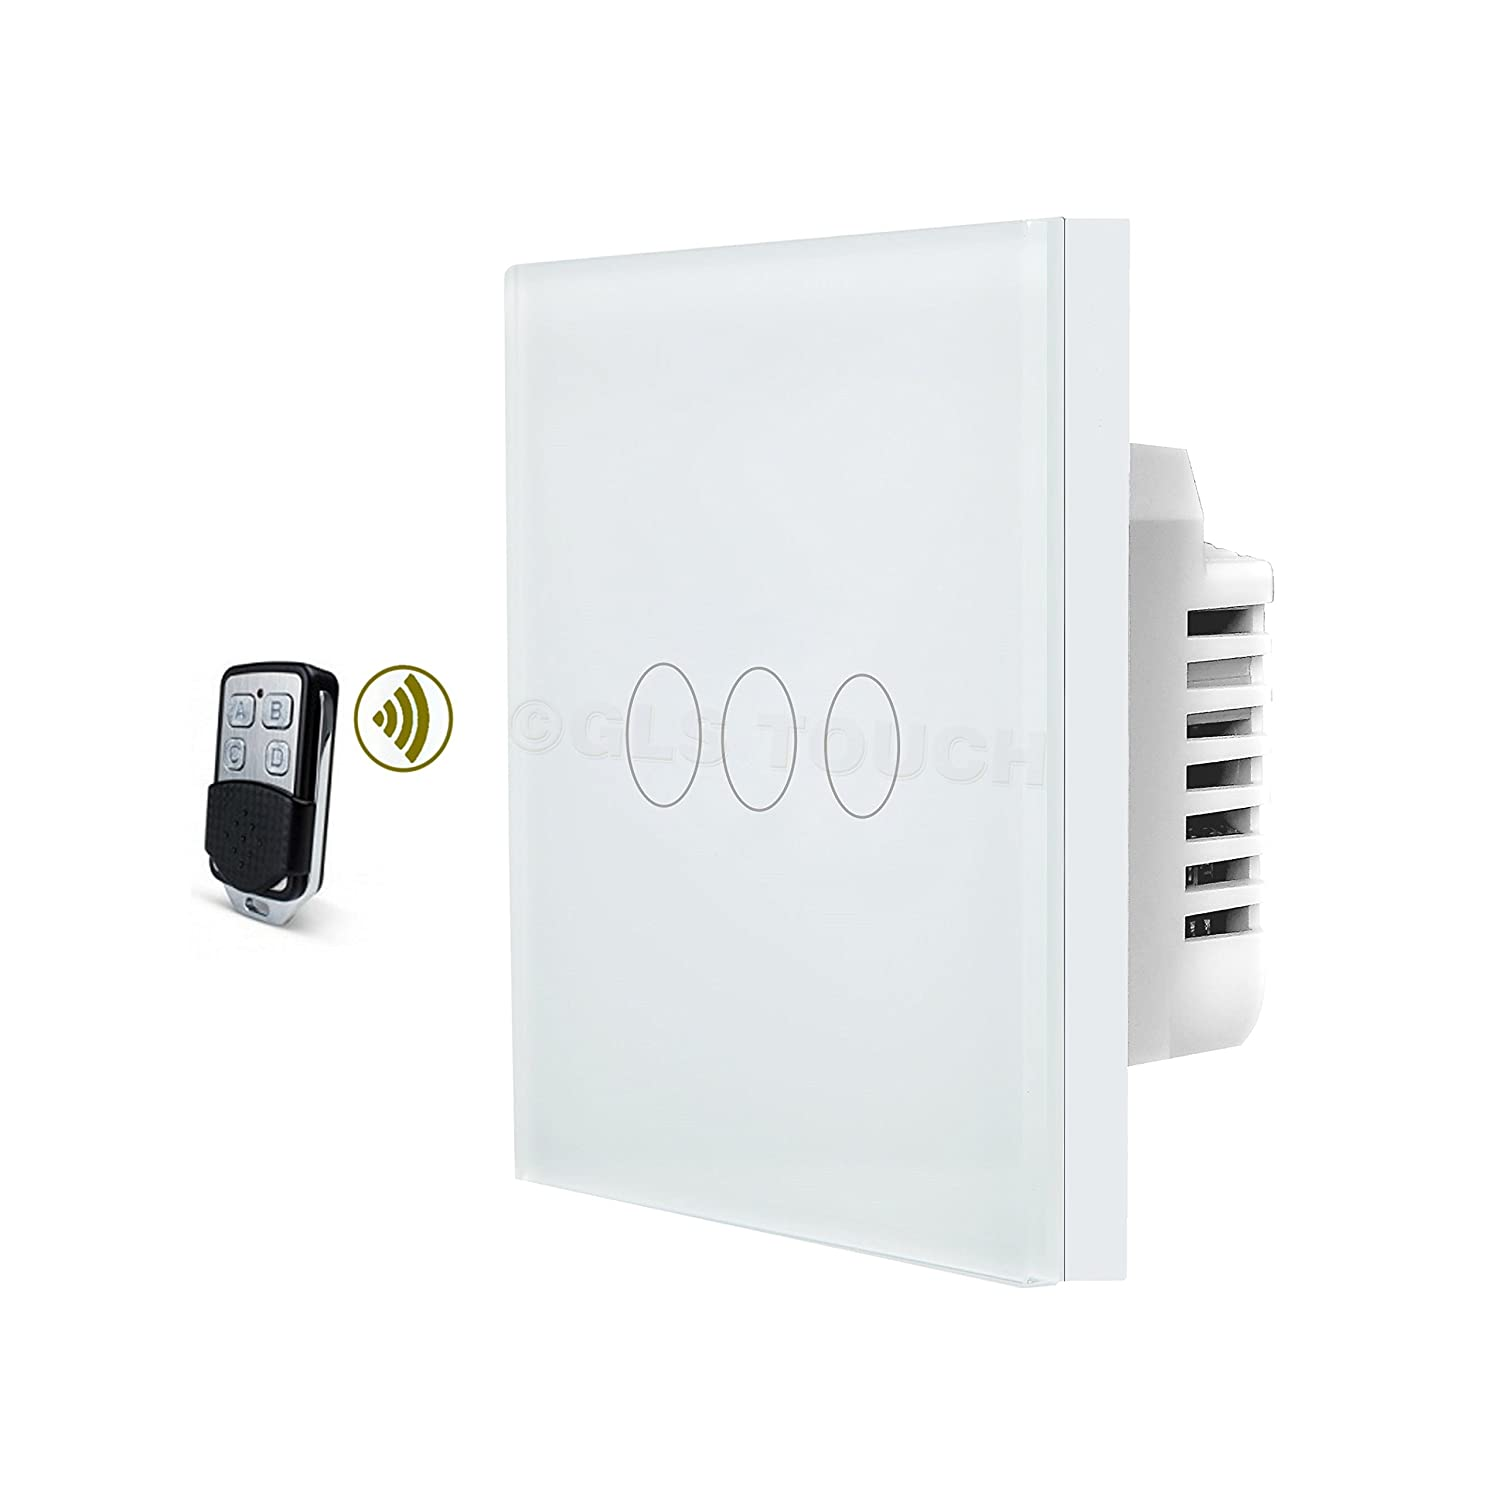 Glstouch Smart Rf Touch Light Switch White Glass Panel 3 Gang 1 Back Box Particularly With Multigang Switches In 2way Or Way 2 Multi Control Via Radio Frequency 43392mhz Pairing Hand Held